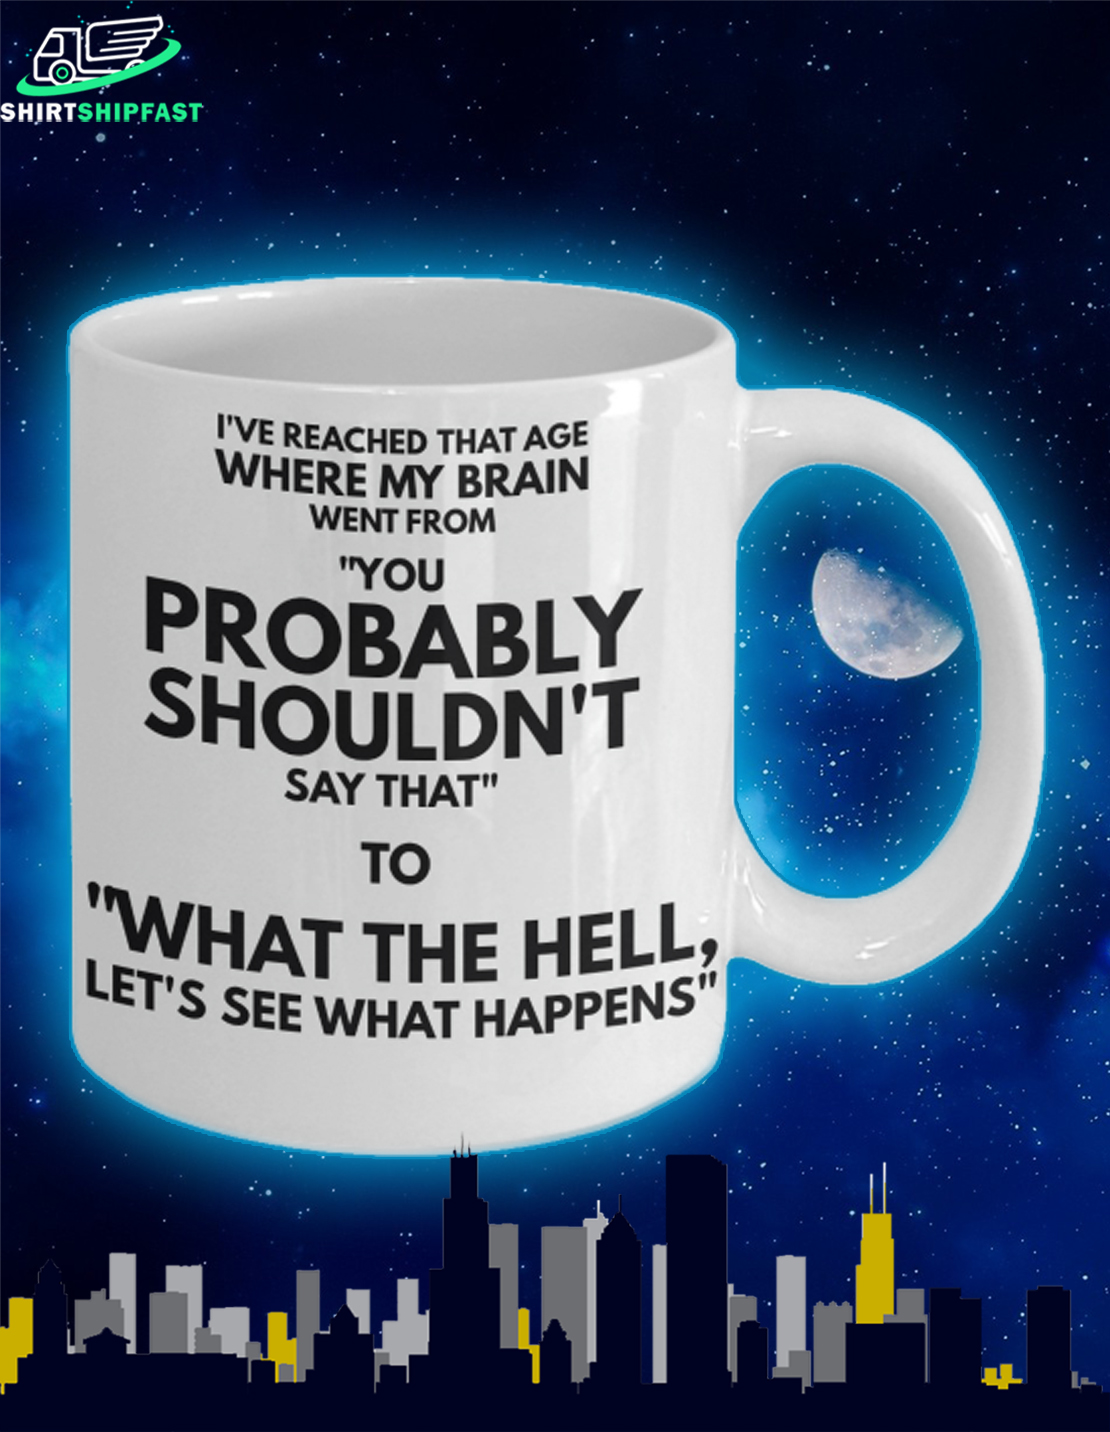 I've reached that age where my brain when from mug - Picture 2